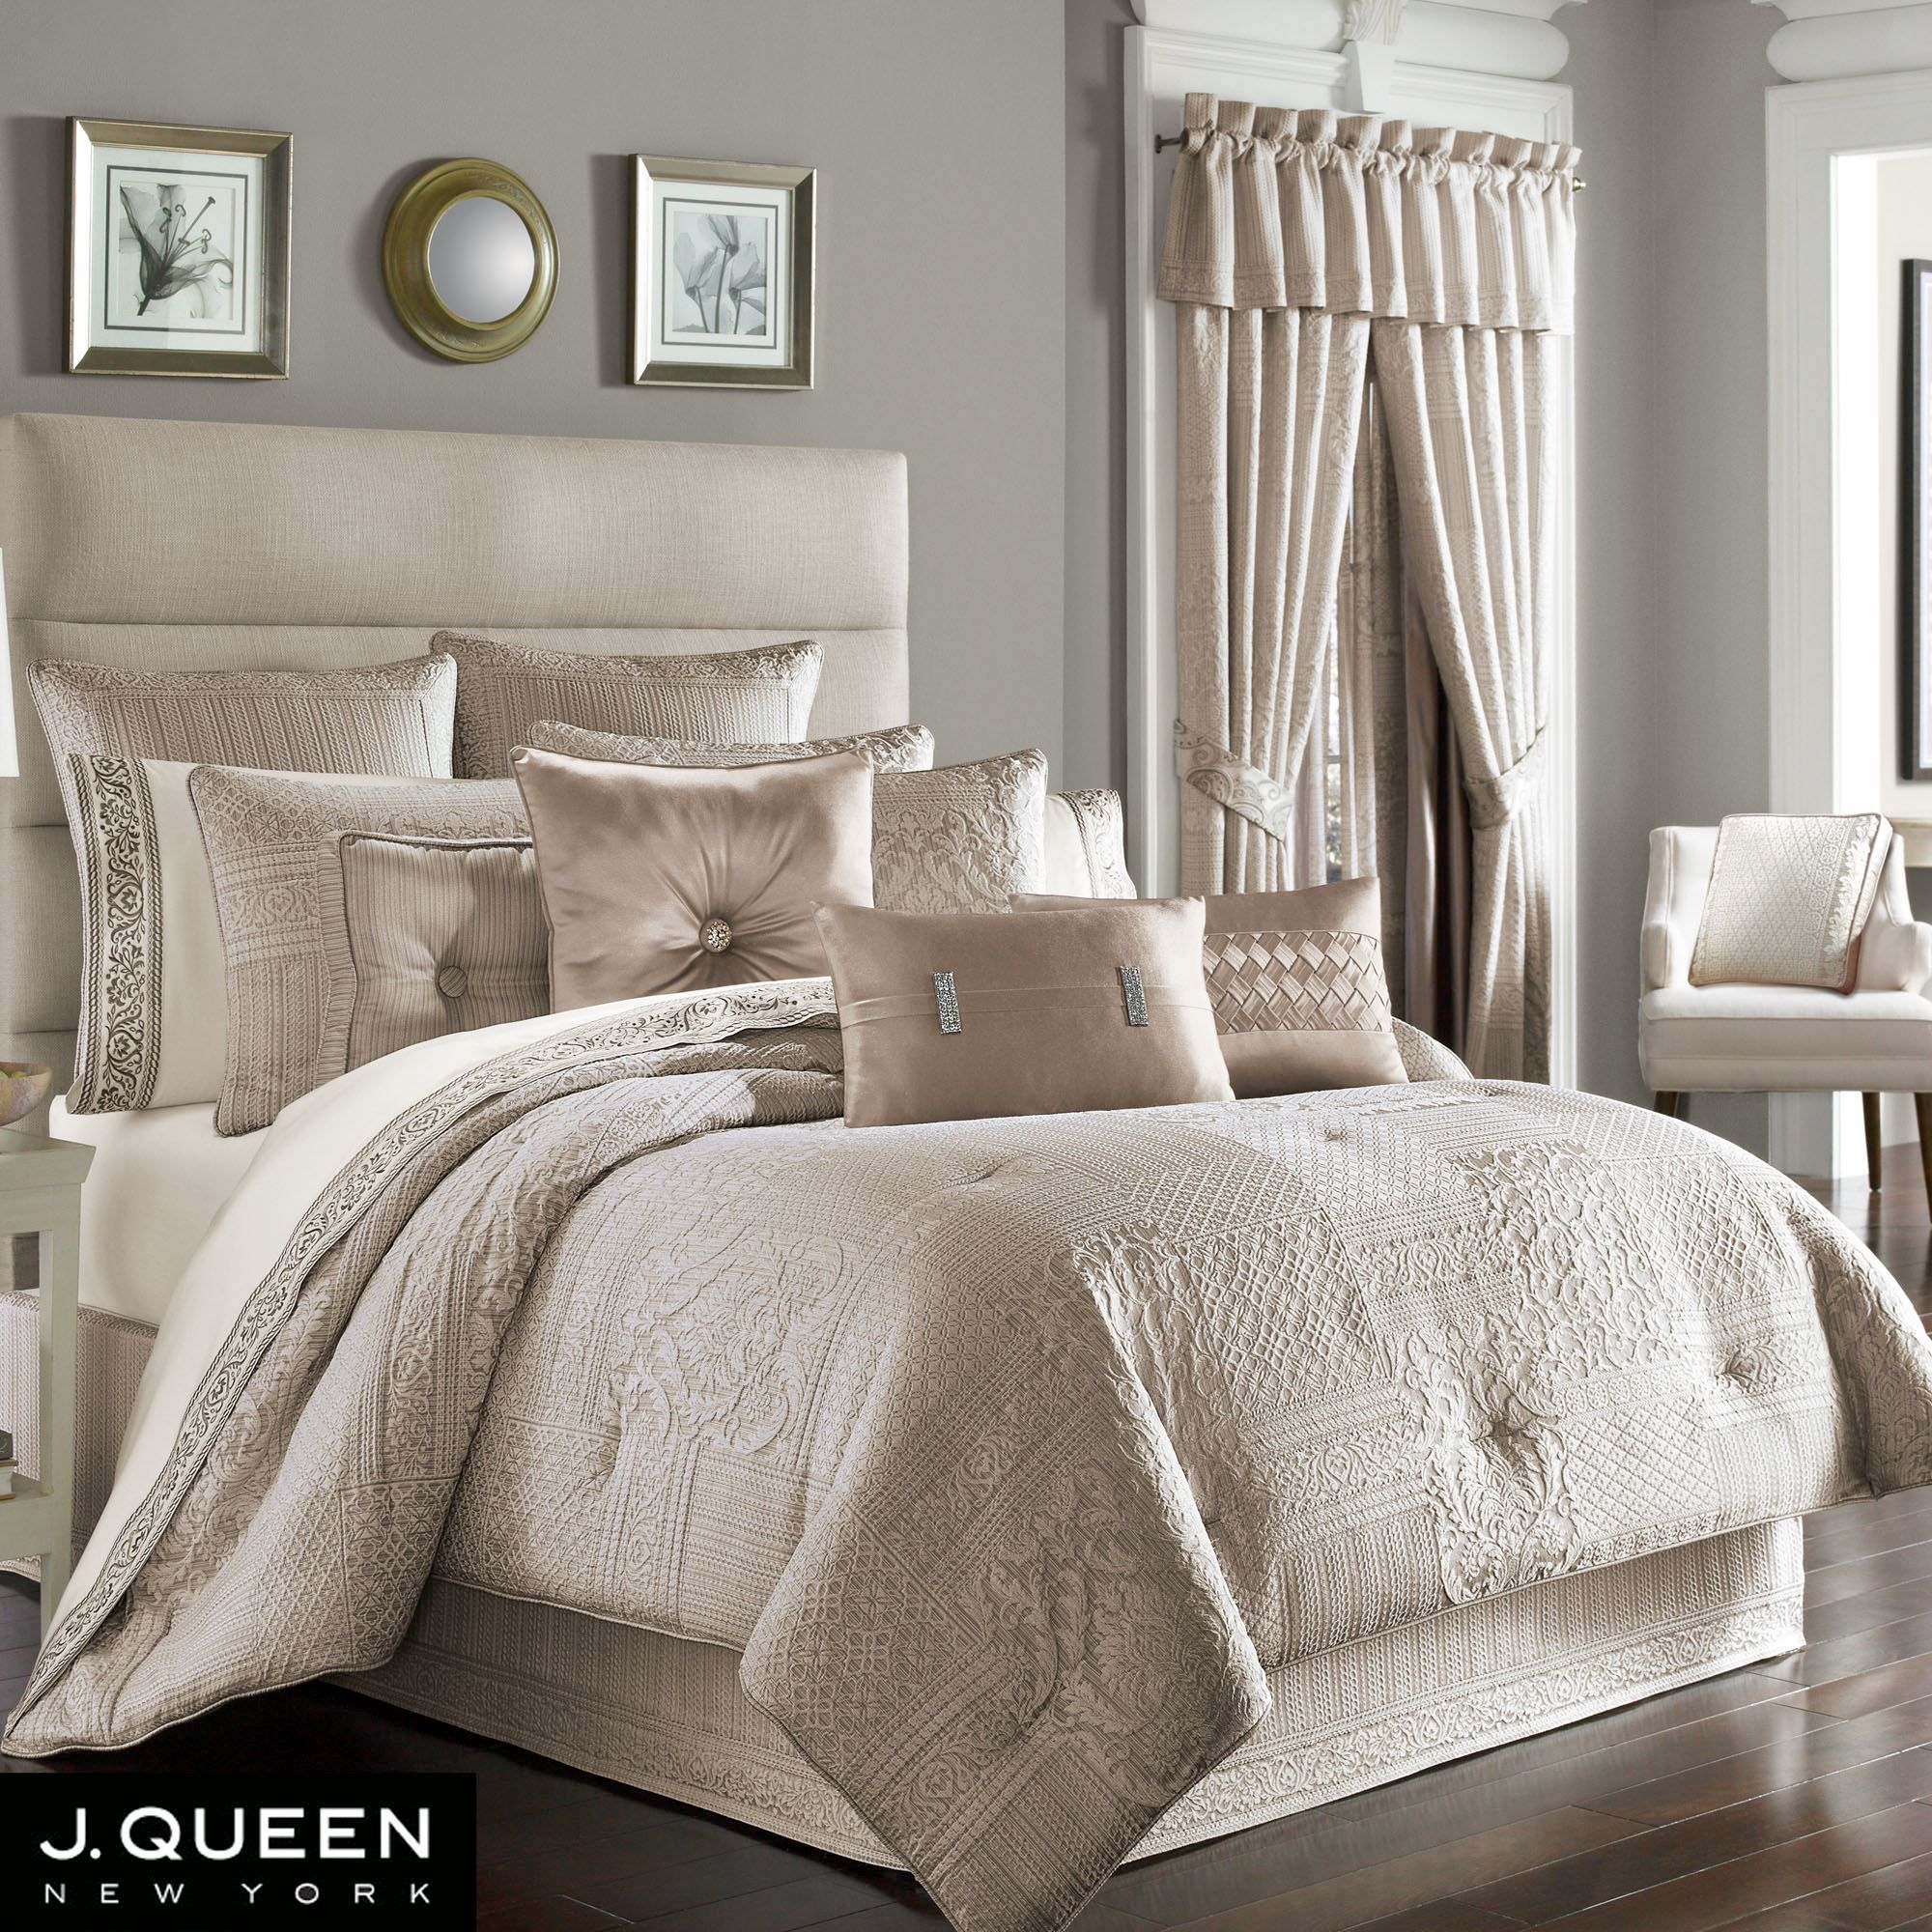 wilmington beige comforter bedding by j queen new york - J Queen New York Bedding